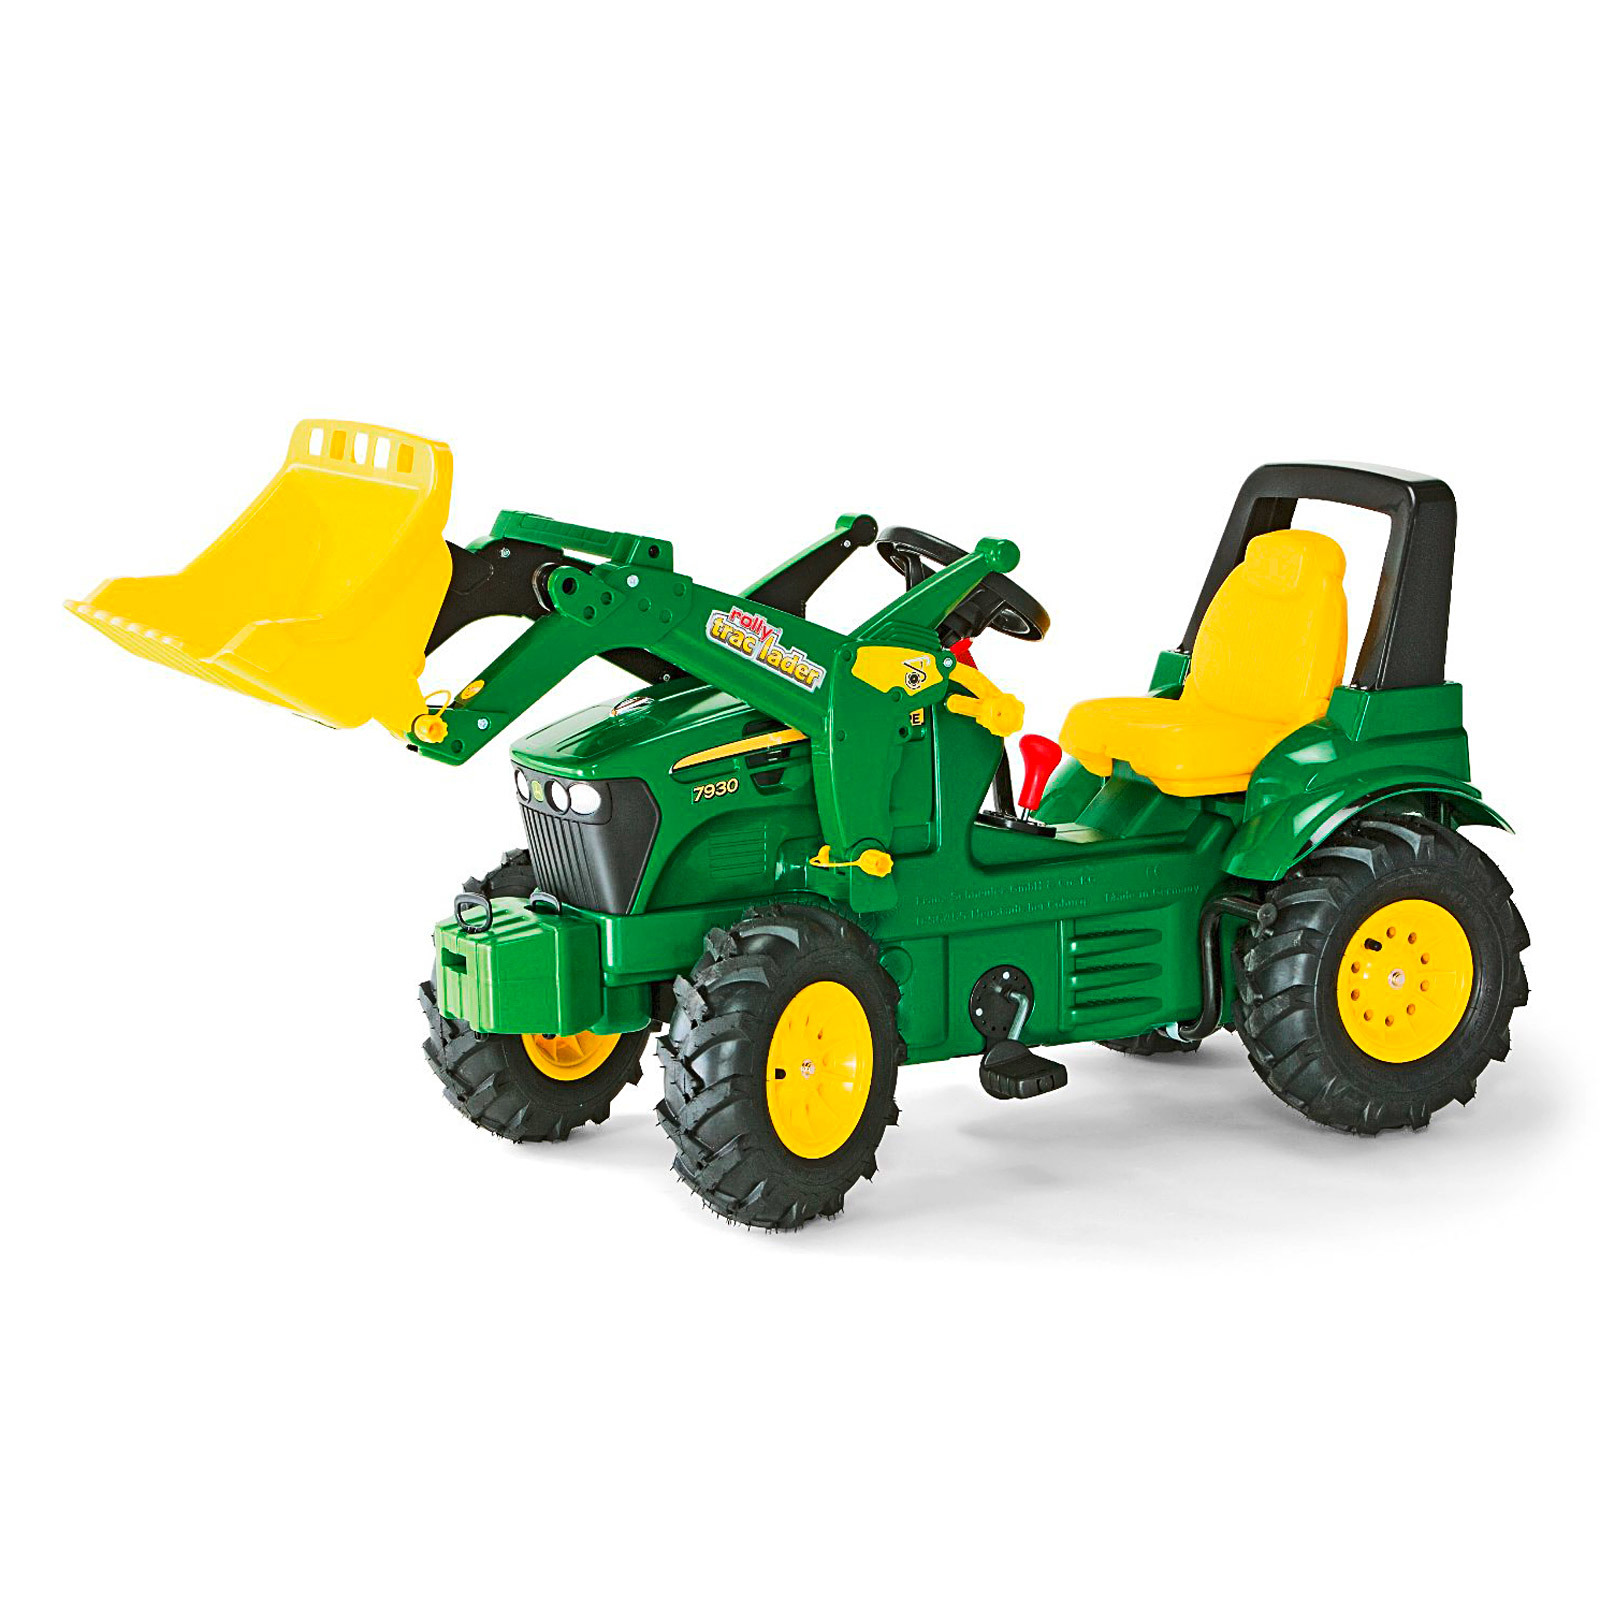 rolly toys kinder trettraktor traktor john deere 7930. Black Bedroom Furniture Sets. Home Design Ideas